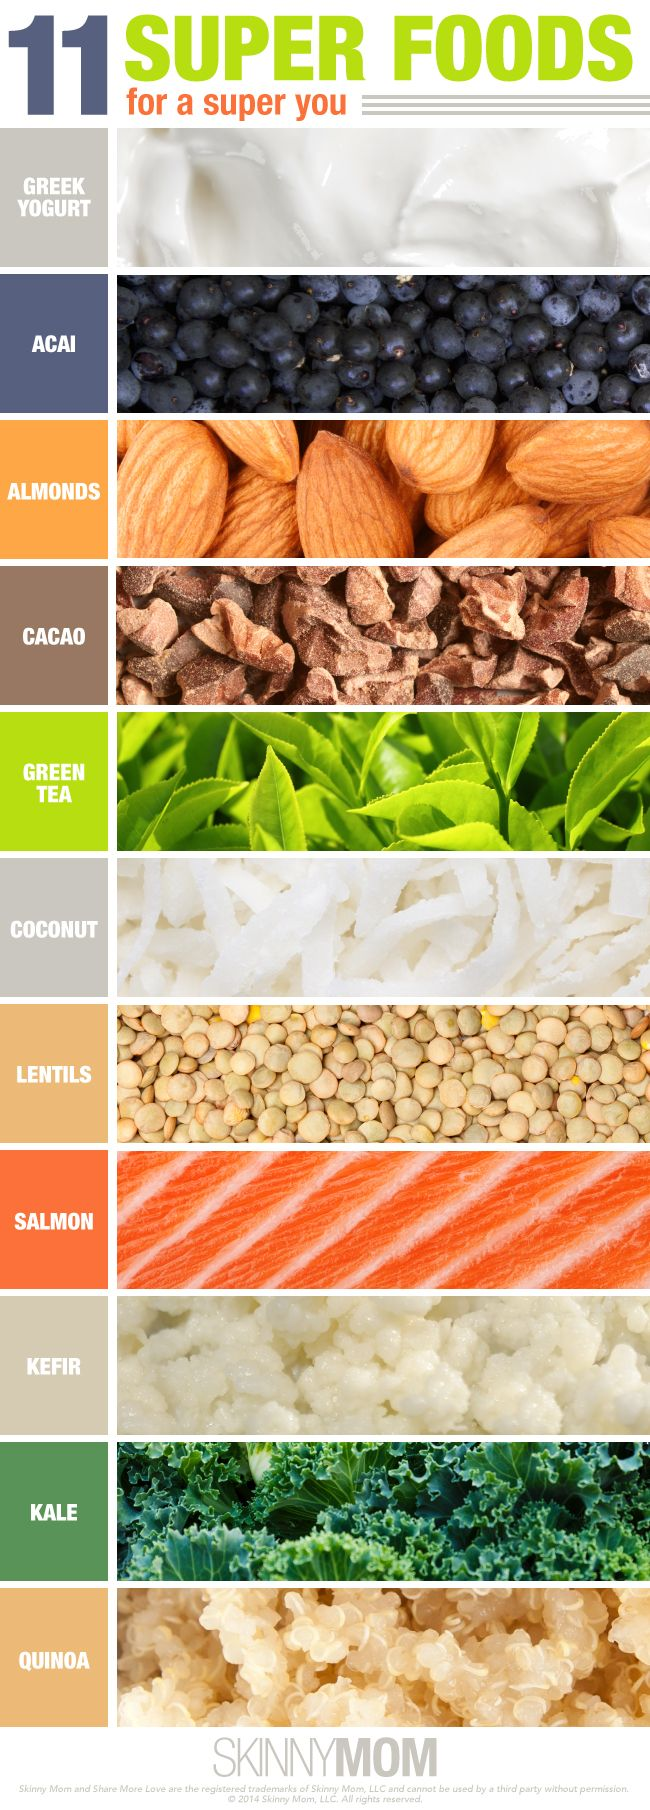 11 Awesome superfoods that you should add to your diet if you have not done so already!